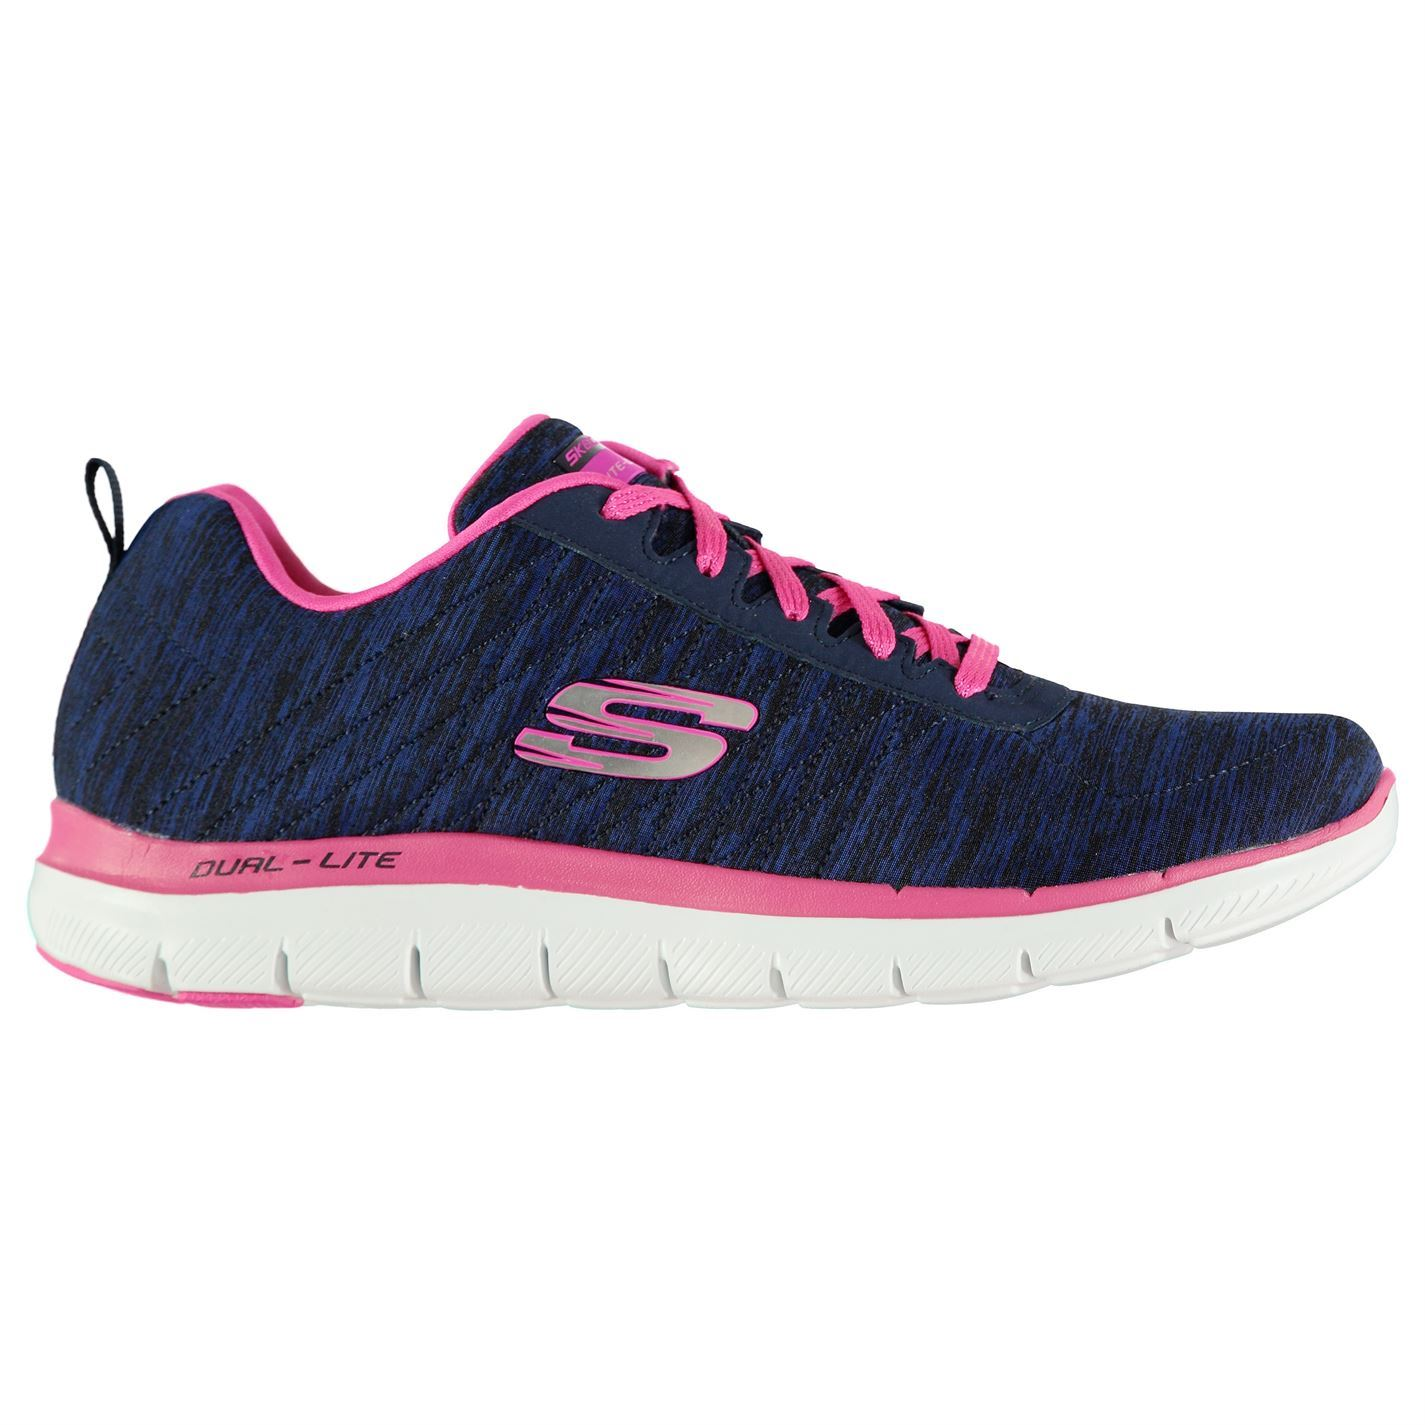 Skechers Womens Flex Appeal Up Trainers Runners Shoes Lace Up Appeal Breathable dba777